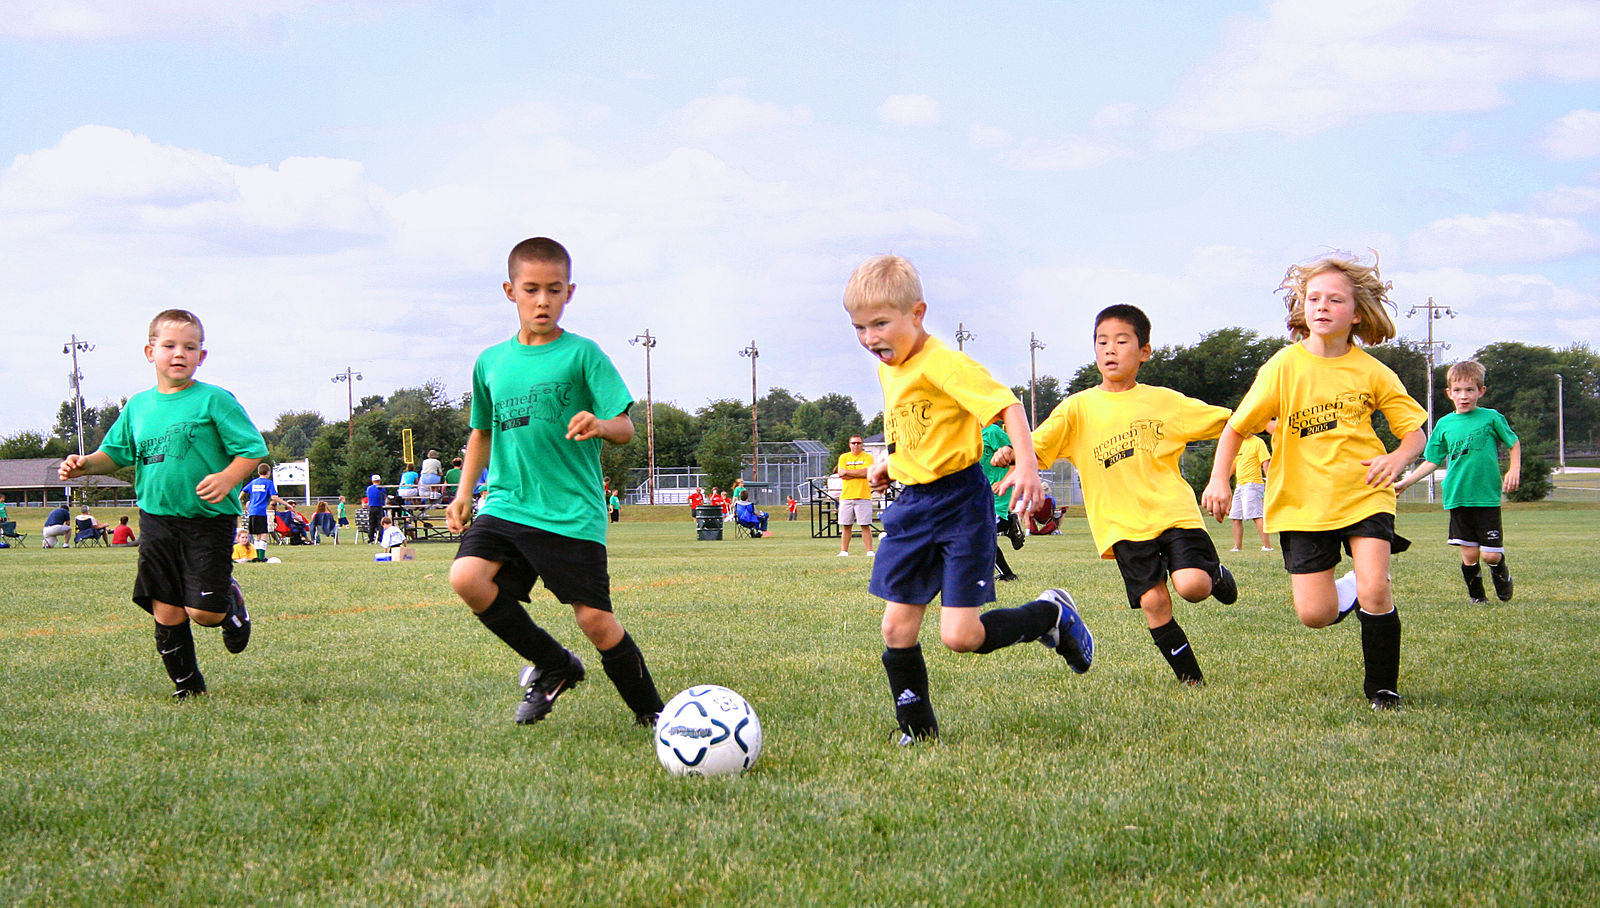 File:Youth-soccer-indiana.jpg